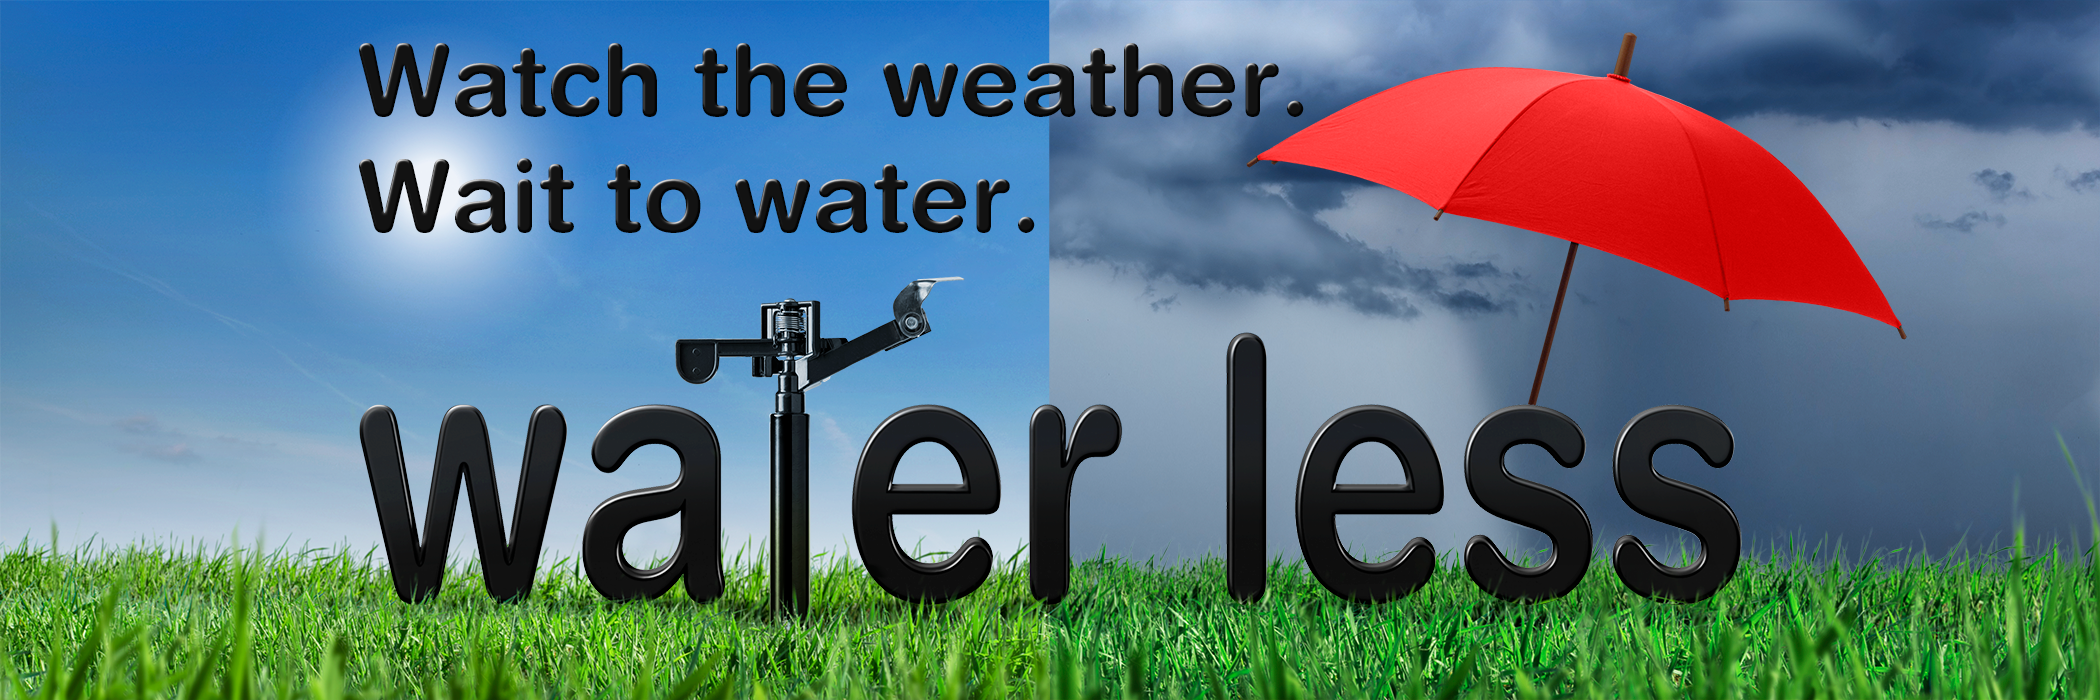 Watch the Weather, Wait to Water Web Banner